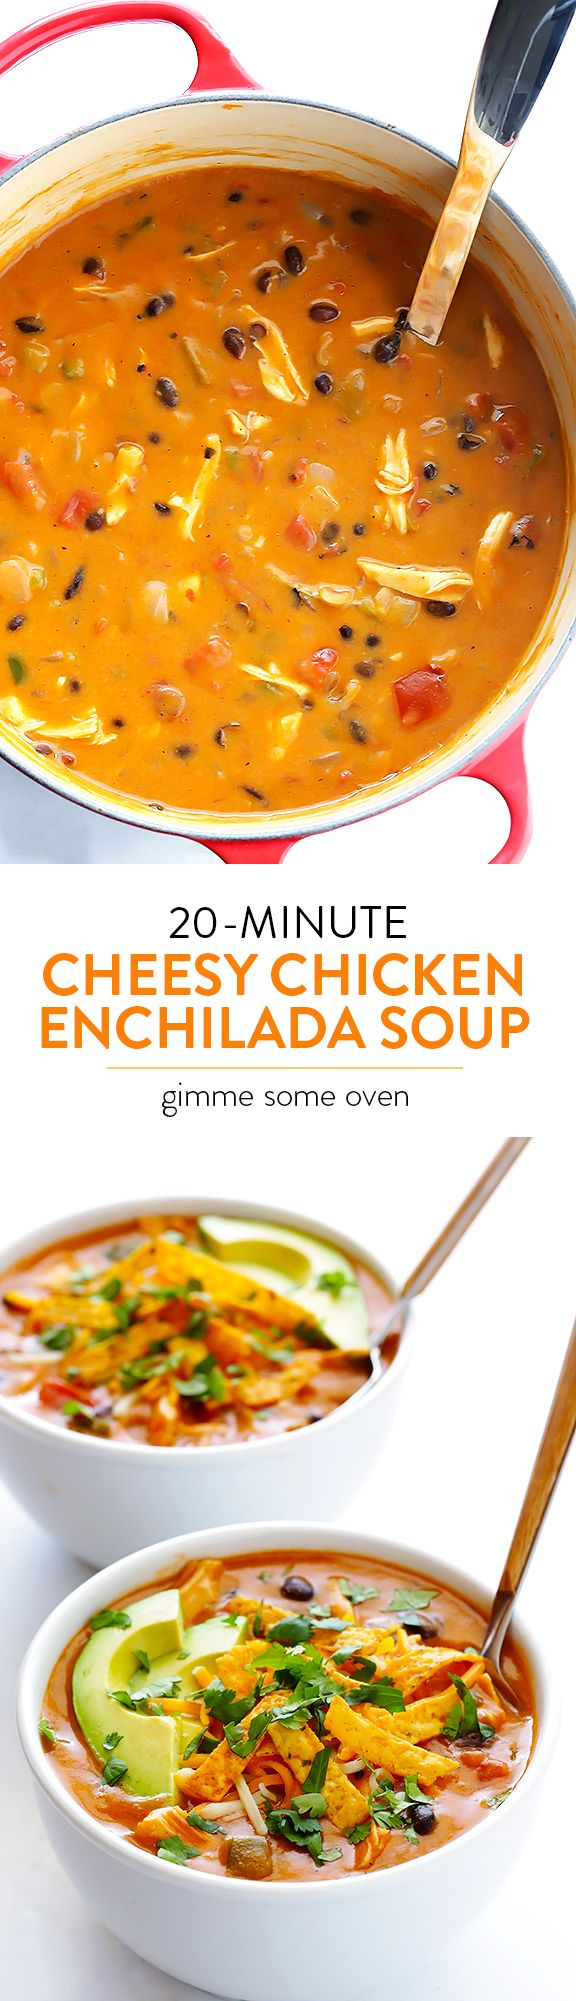 This delicious and flavorful soup is super-easy to make, and it's ready to go in about 20 minutes! Even better!! | gimmesomeoven